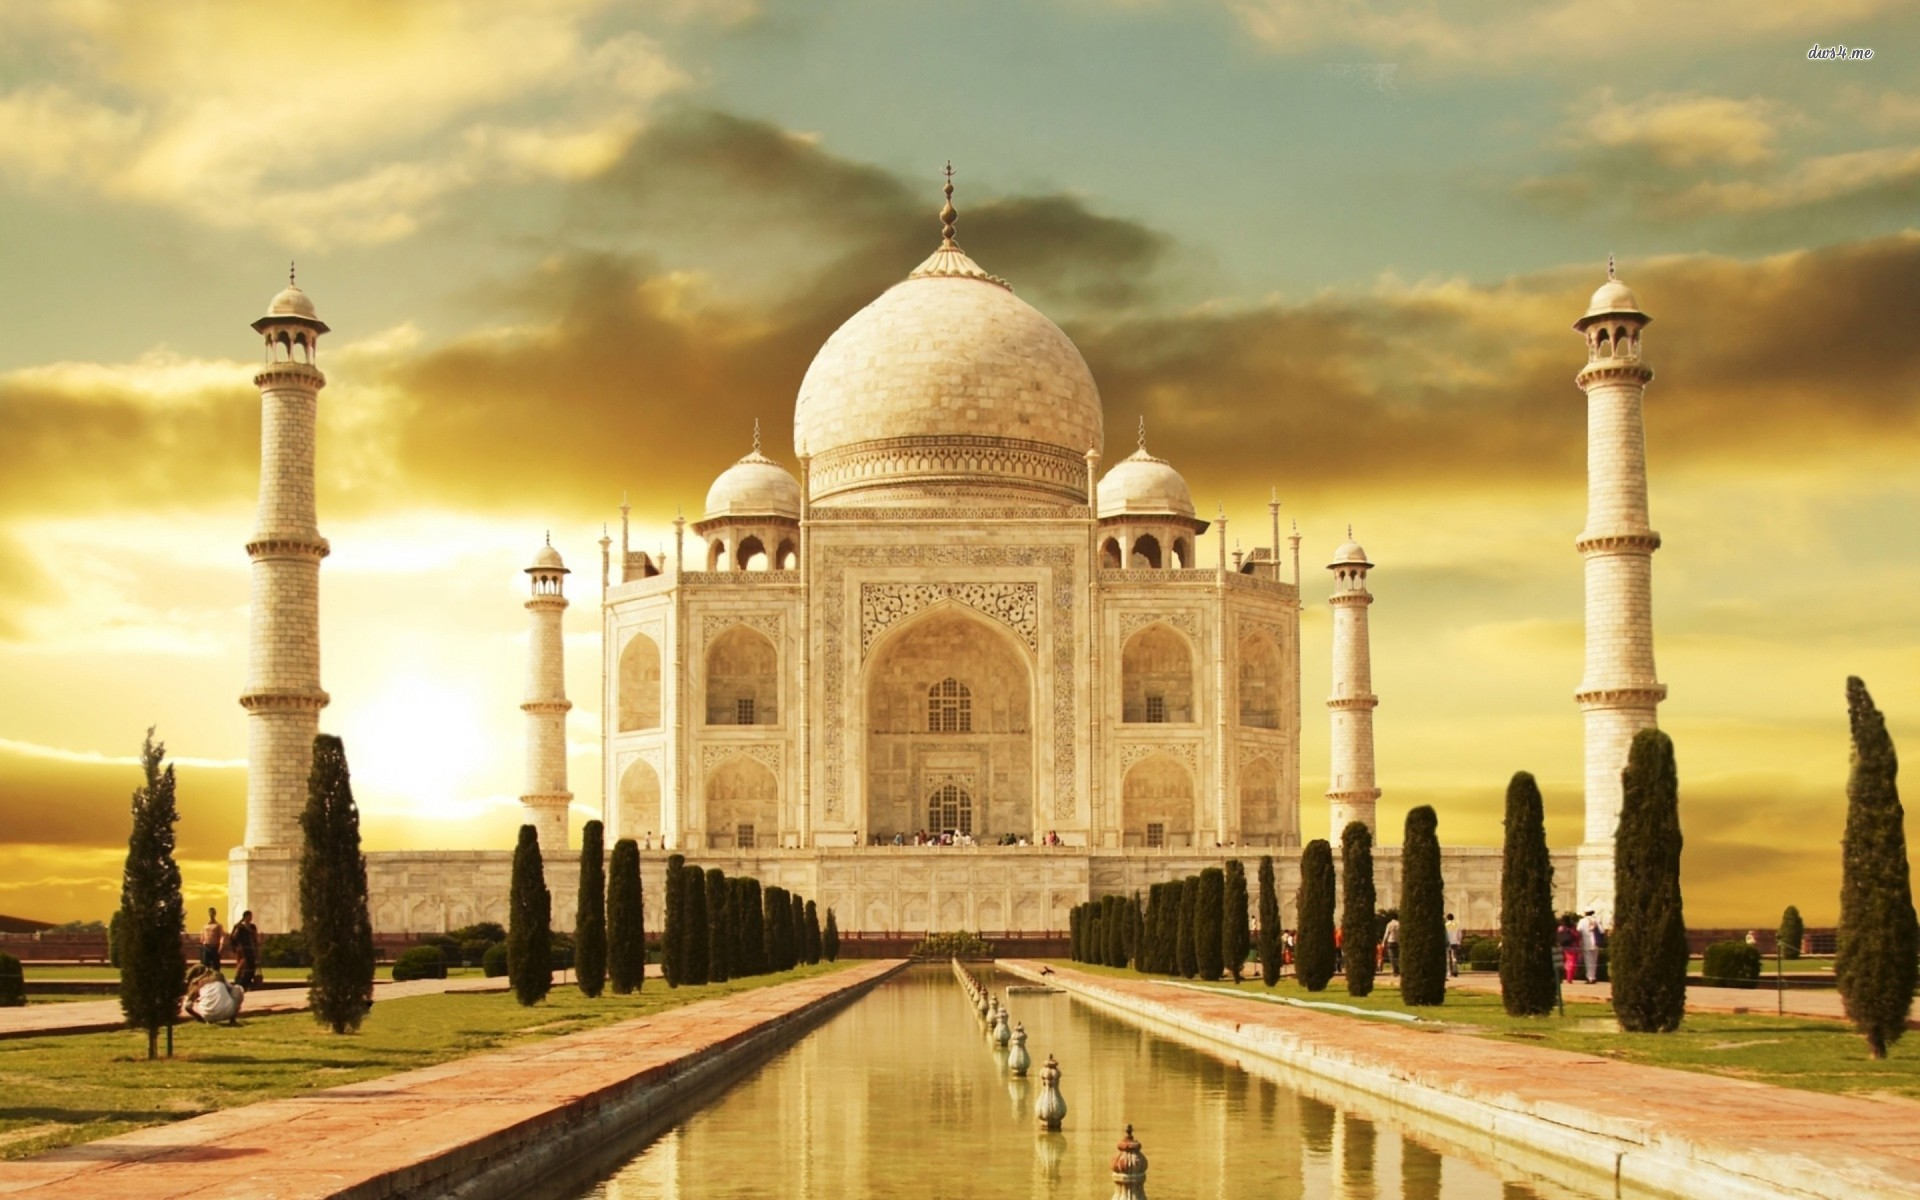 Relationship Quotes Wallpapers Must Visit Taj Mahal Once In Lifetime